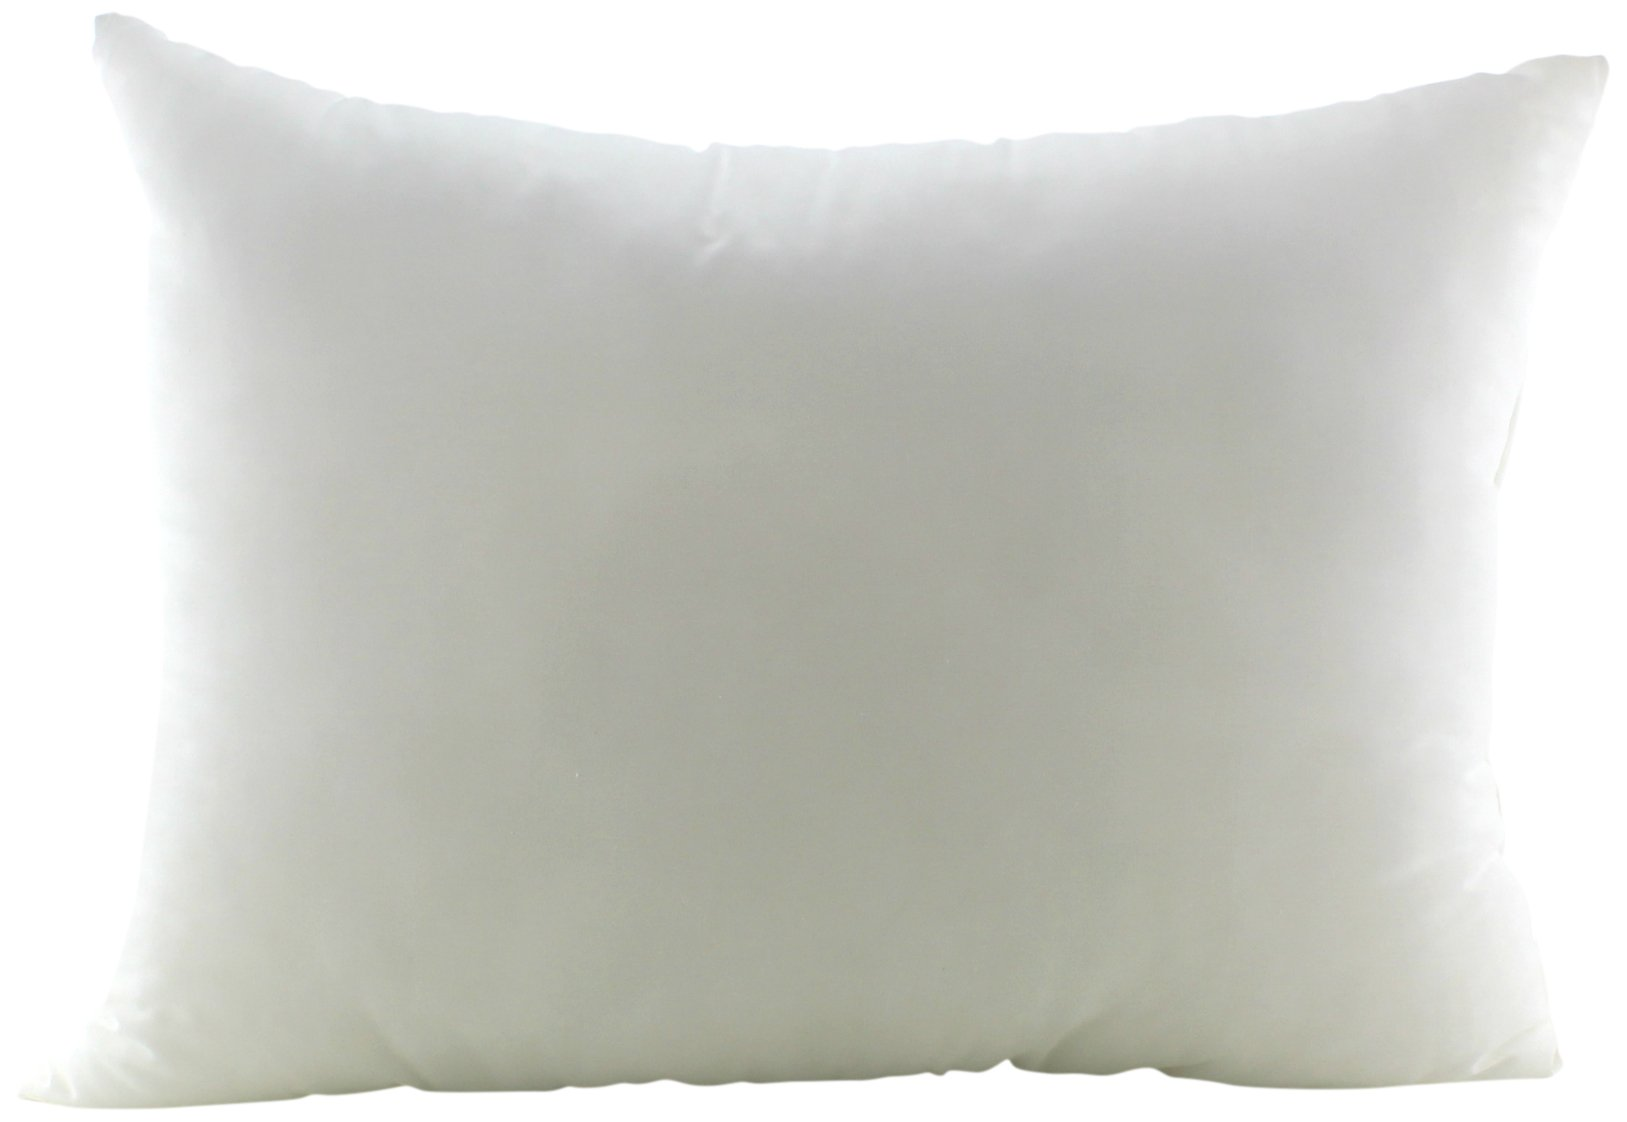 Pile of Pillows Everyday Sleepytime Pillow, Queen, 2-Pack by Pile of Pillows